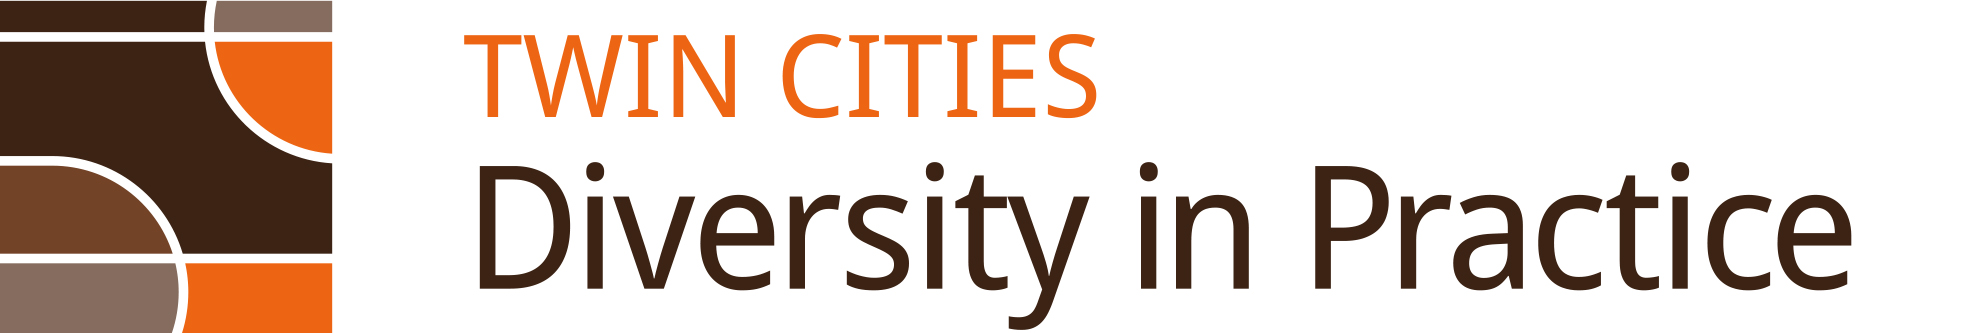 Twin Cities Diversity in Practice